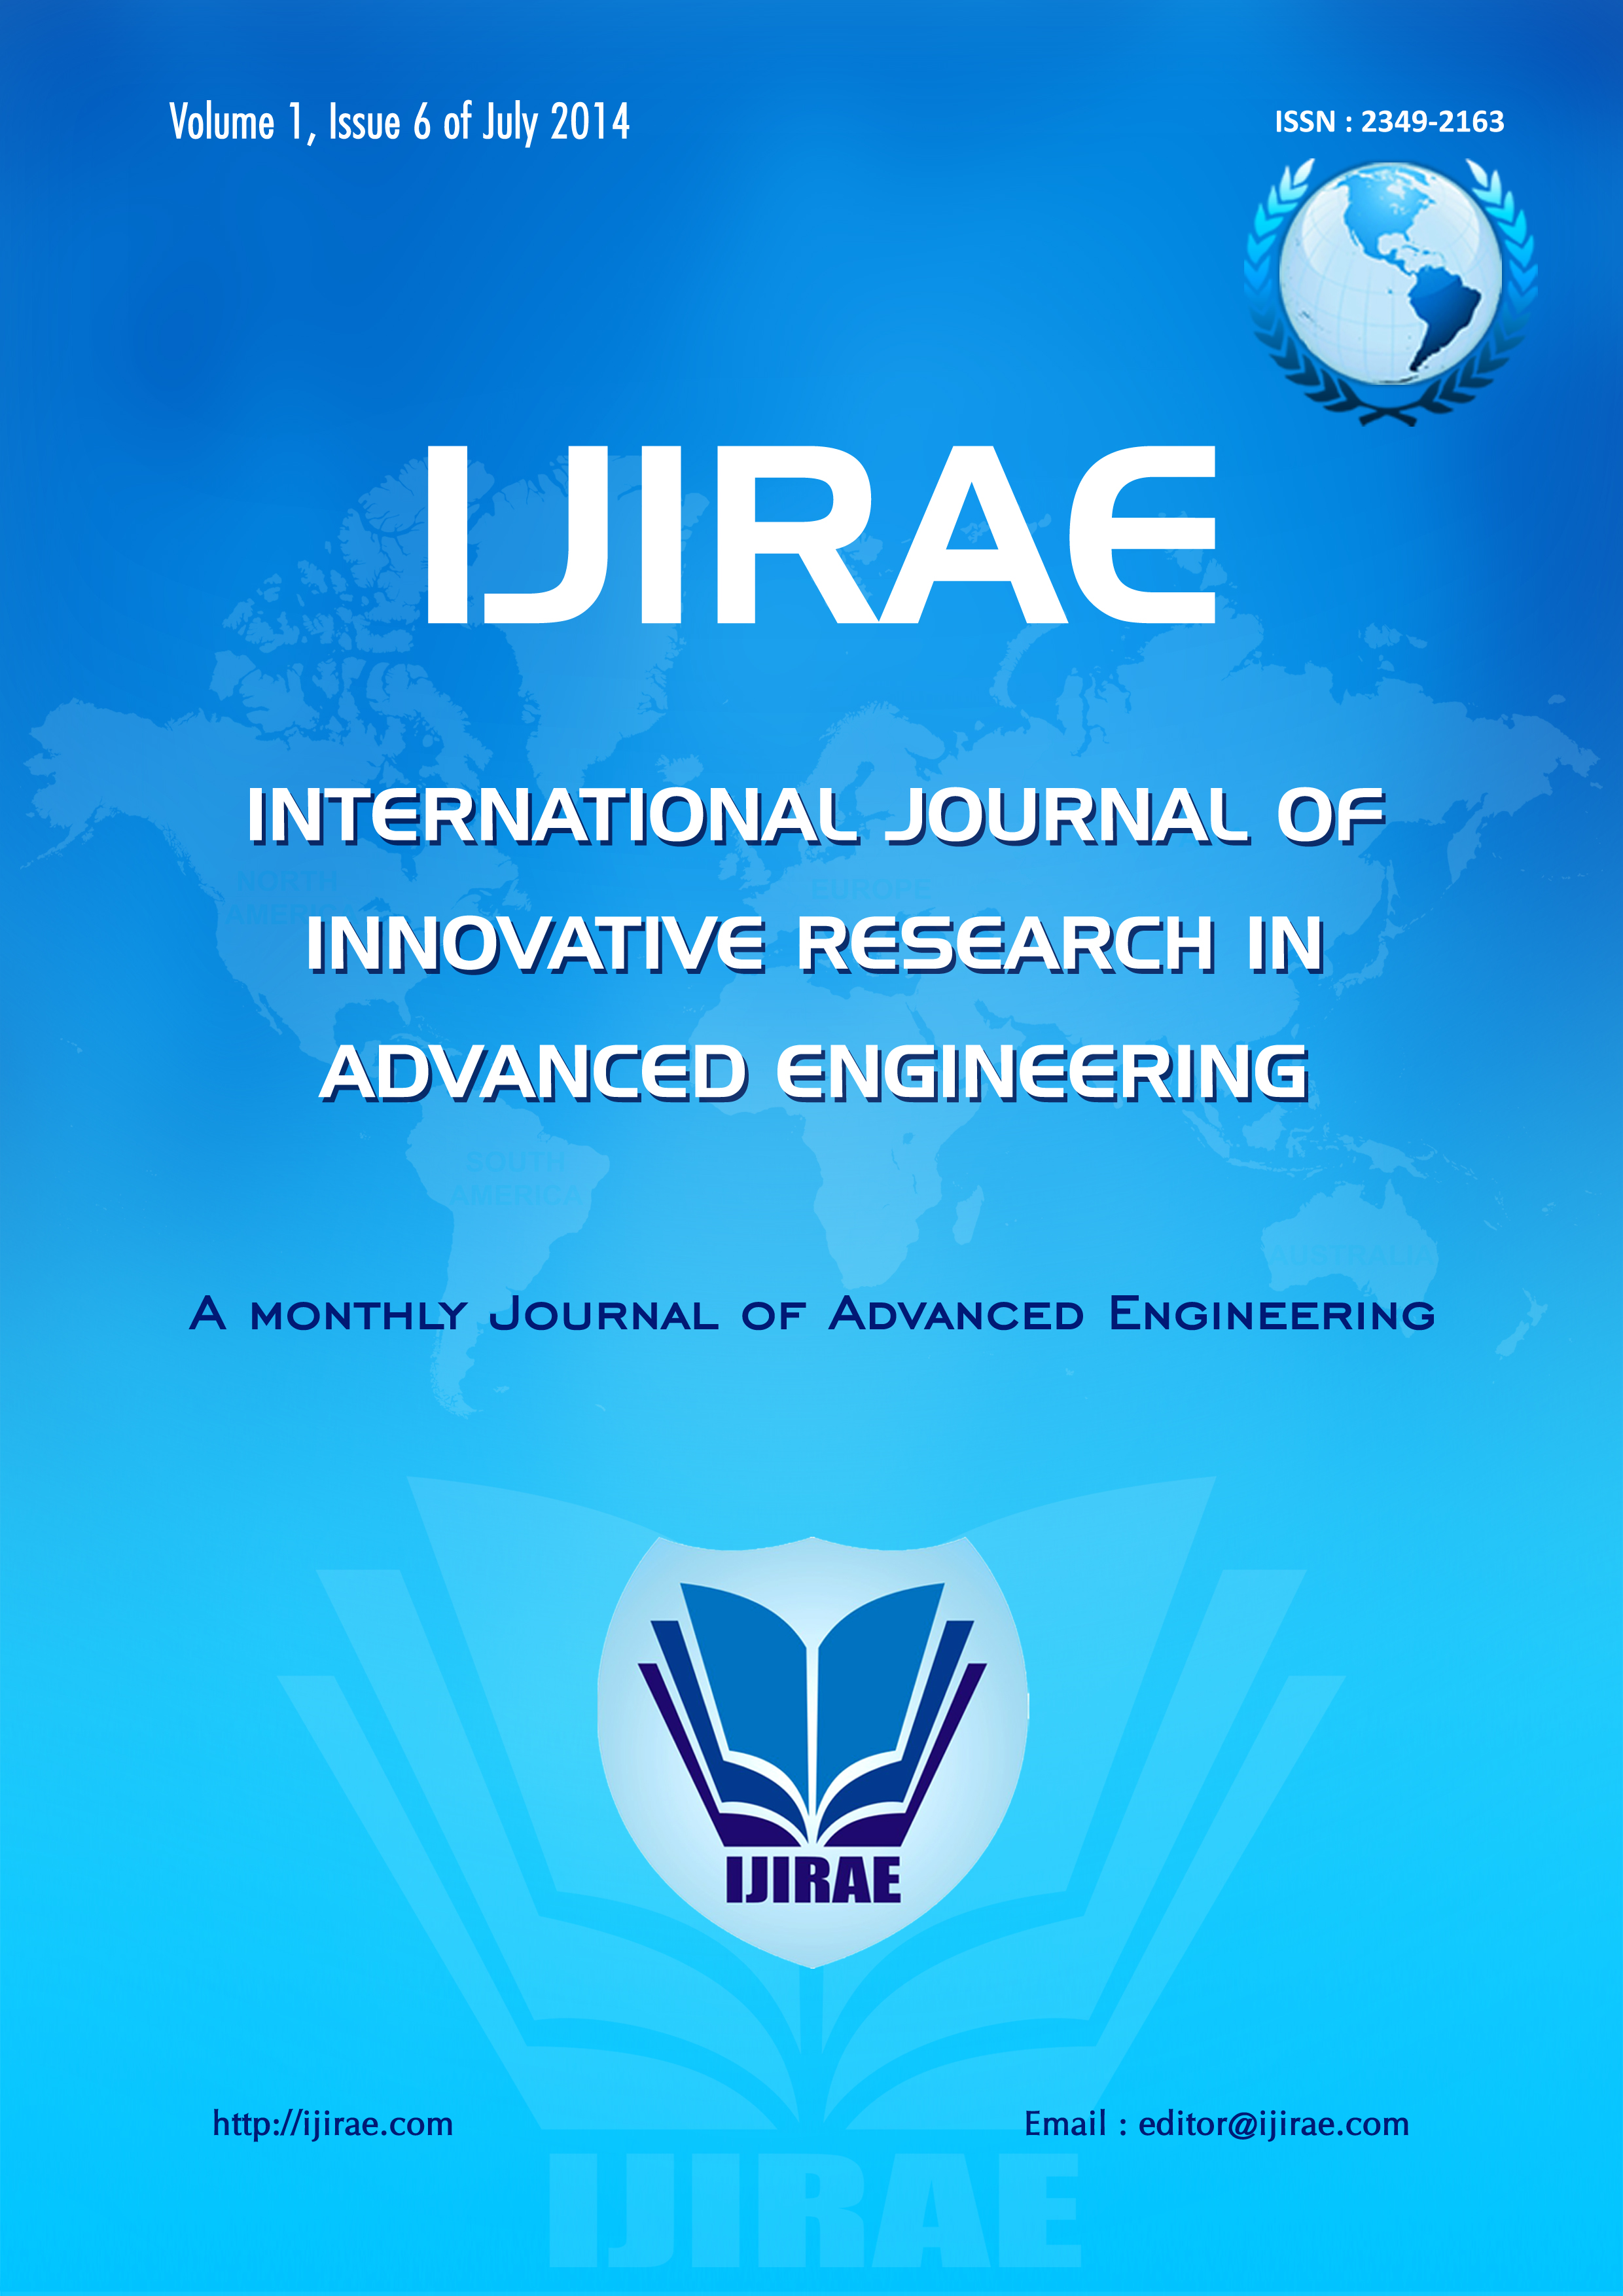 International Journal of Innovative Research in Advanced Engineering